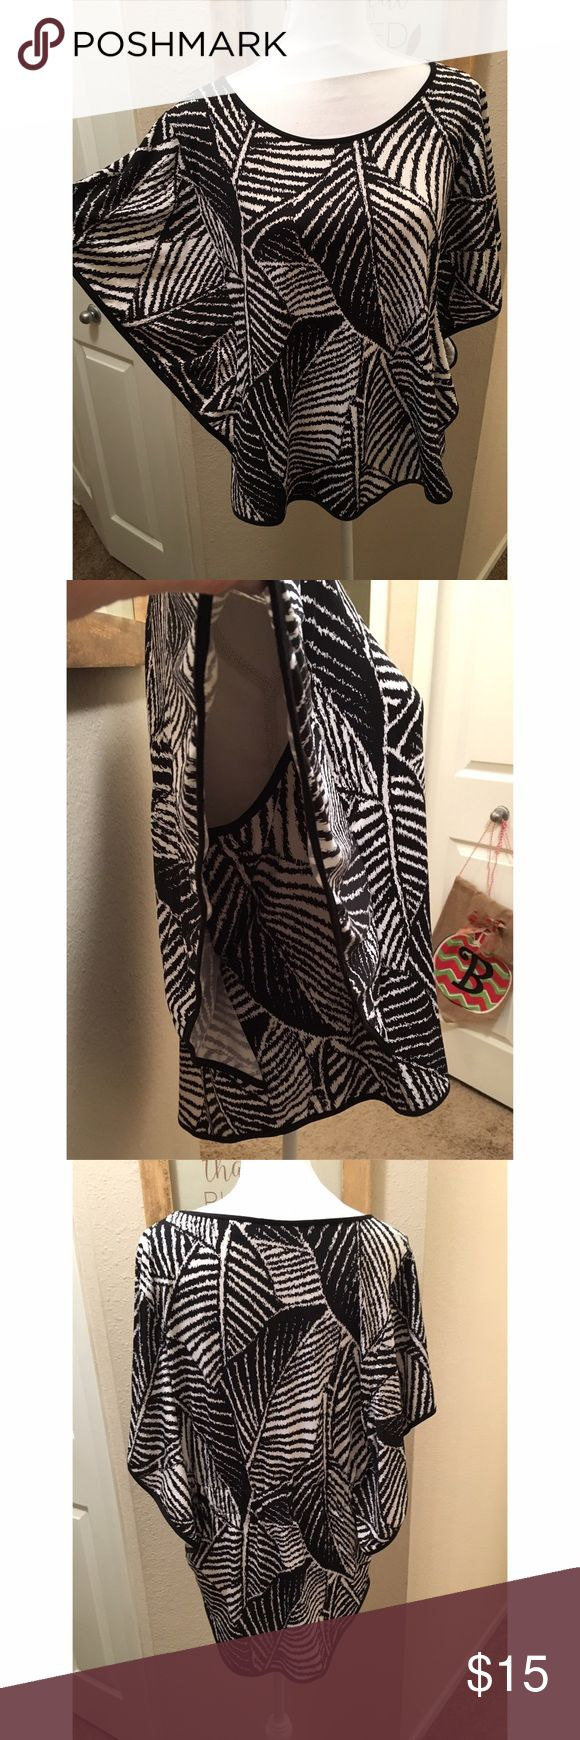 """New York & Company top Lovely top by New York & Company 🌺 features black and white pattern with """"open"""" batwing type sleeves. There is an elastic band in the back and the top goes slightly longer in the back too. Great over black leggings. In excellent used condition. New York & Company Tops Blouses"""